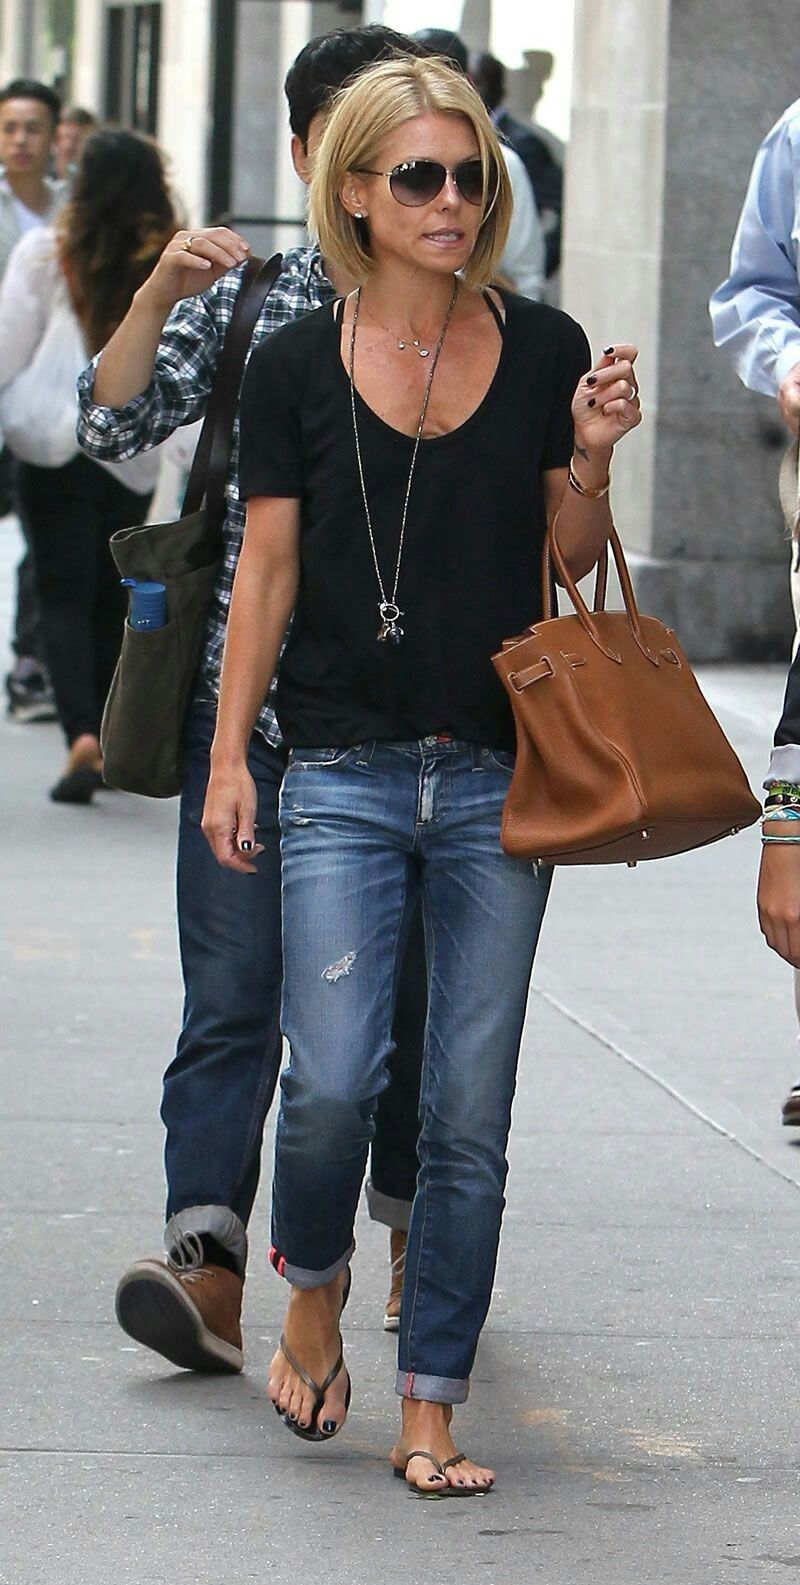 Pin by Linda LaPlante on Style Clothes | Pinterest | Kelly ripa ...